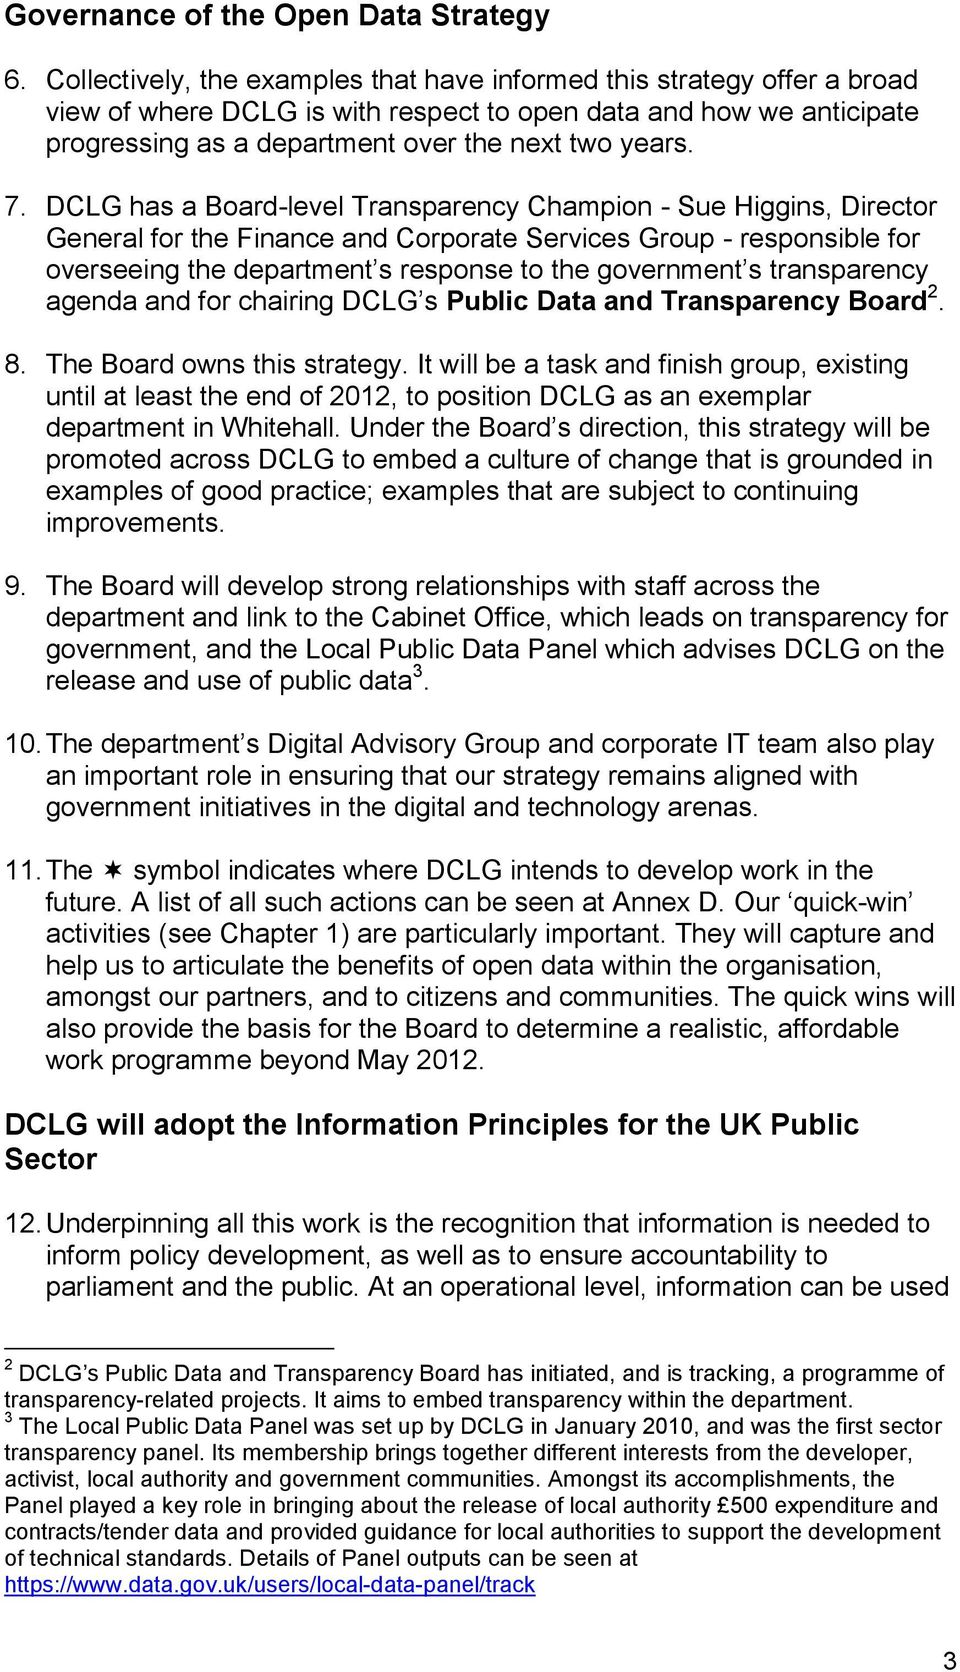 DCLG has a Board-level Transparency Champion - Sue Higgins, Director General for the Finance and Corporate Services Group - responsible for overseeing the department s response to the government s